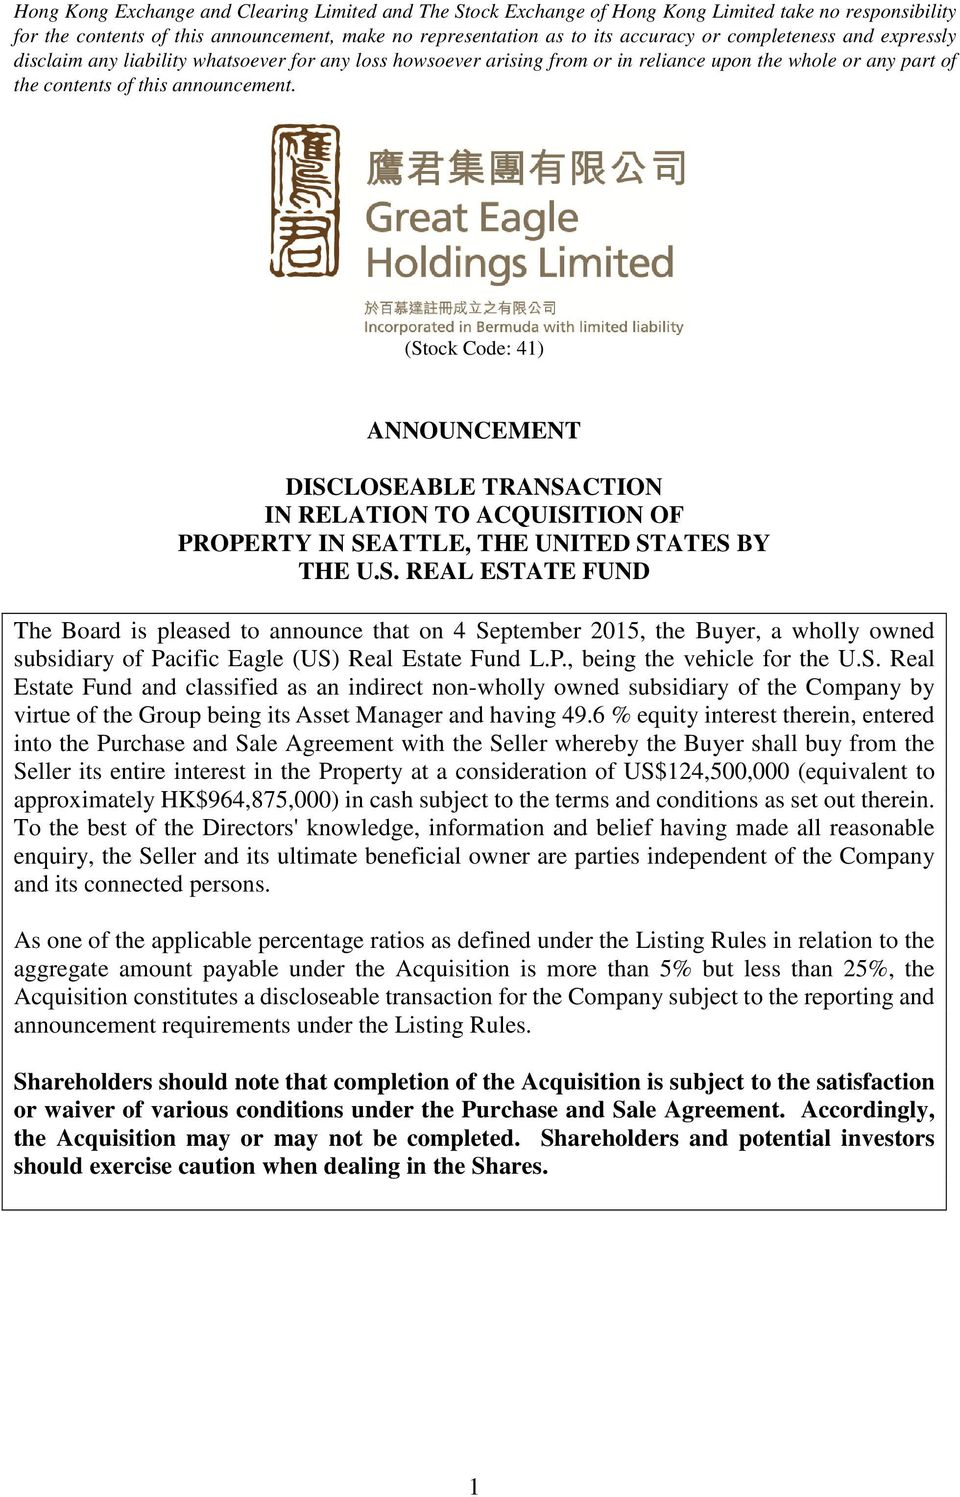 (Stock Code: 41) ANNOUNCEMENT DISCLOSEABLE TRANSACTION IN RELATION TO ACQUISITION OF PROPERTY IN SEATTLE, THE UNITED STATES BY THE U.S. REAL ESTATE FUND The Board is pleased to announce that on 4 September 2015, the Buyer, a wholly owned subsidiary of Pacific Eagle (US) Real Estate Fund L.